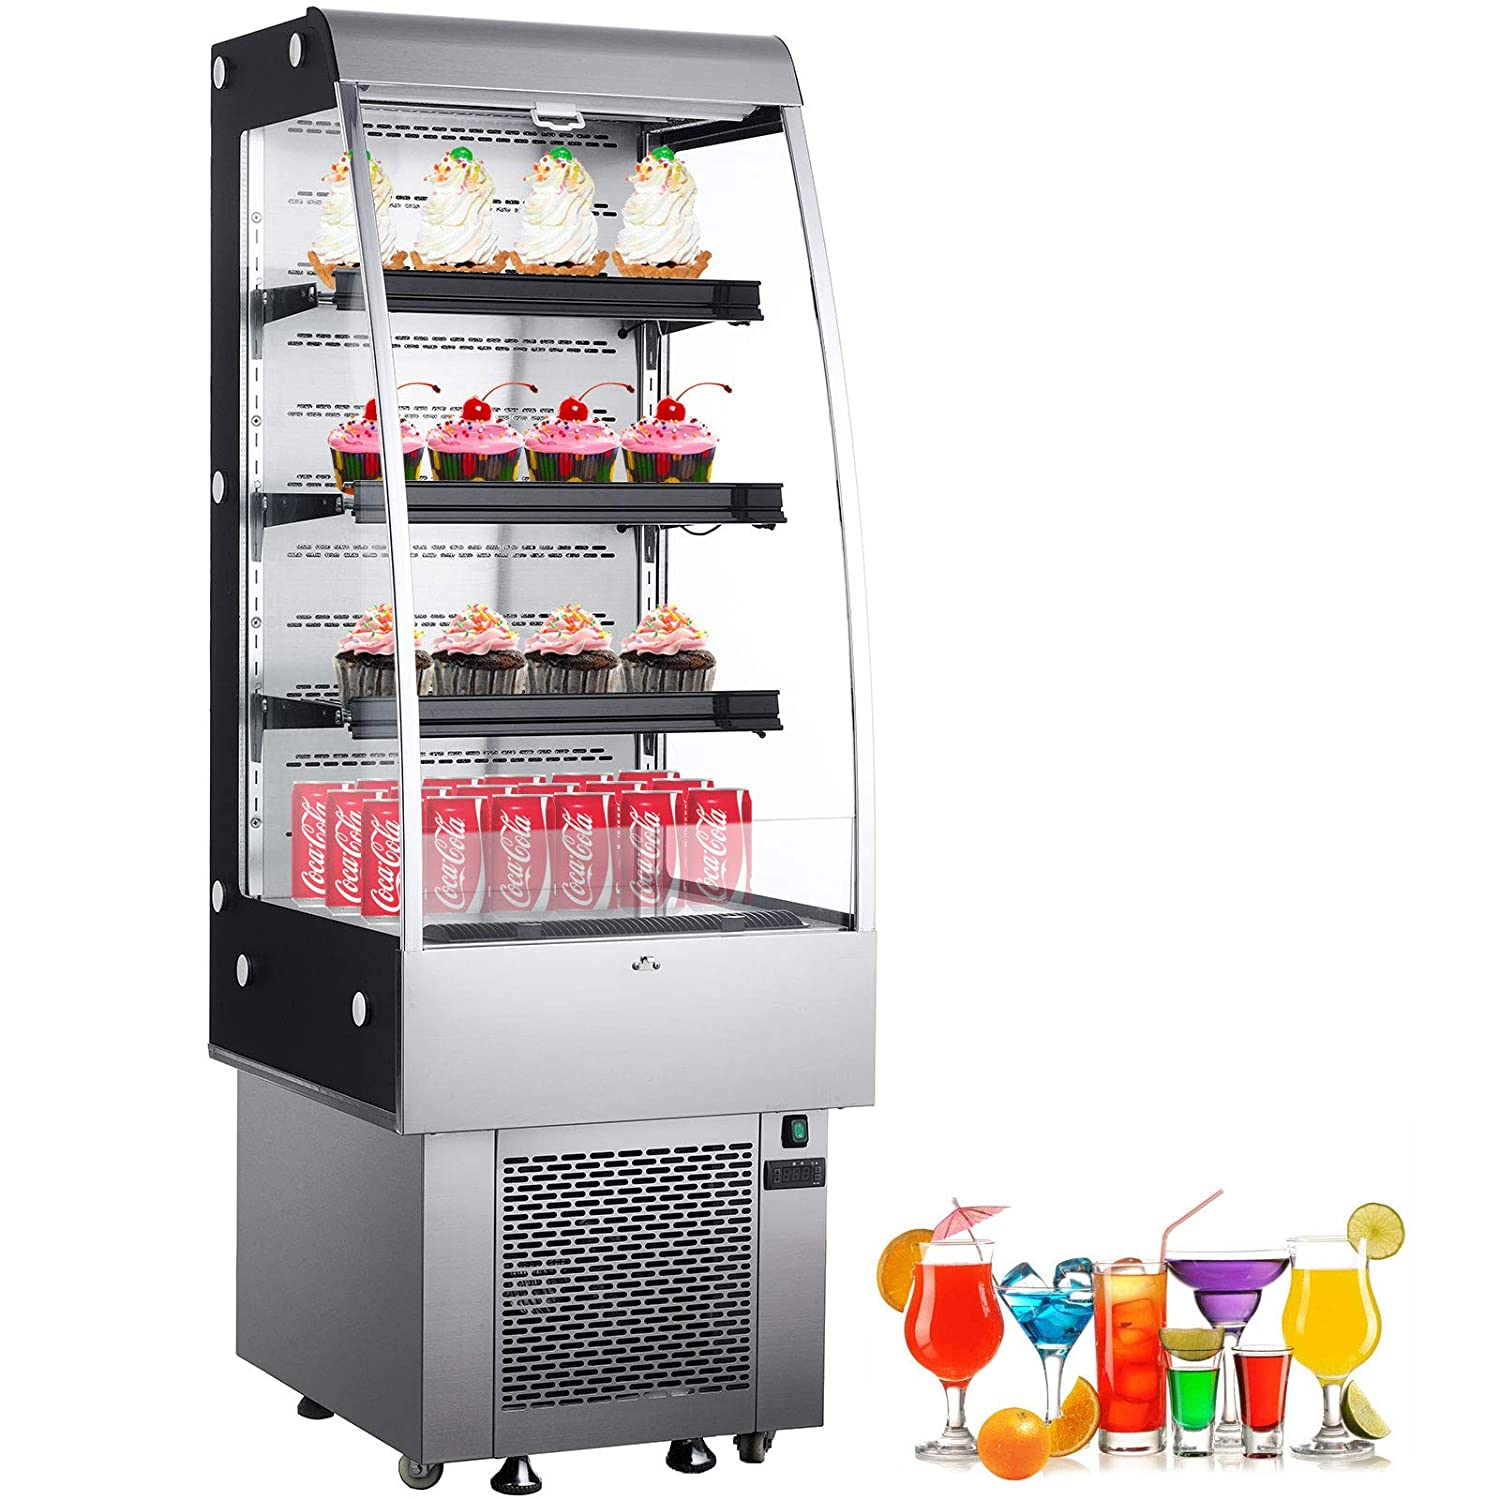 VBENLEM 27 inchs Stainless Steel Intelligent Self Contained Open Refrigerator 250L Commercial Display Cooler Case with LED Light Suit for Shop Supermarket Restaurant